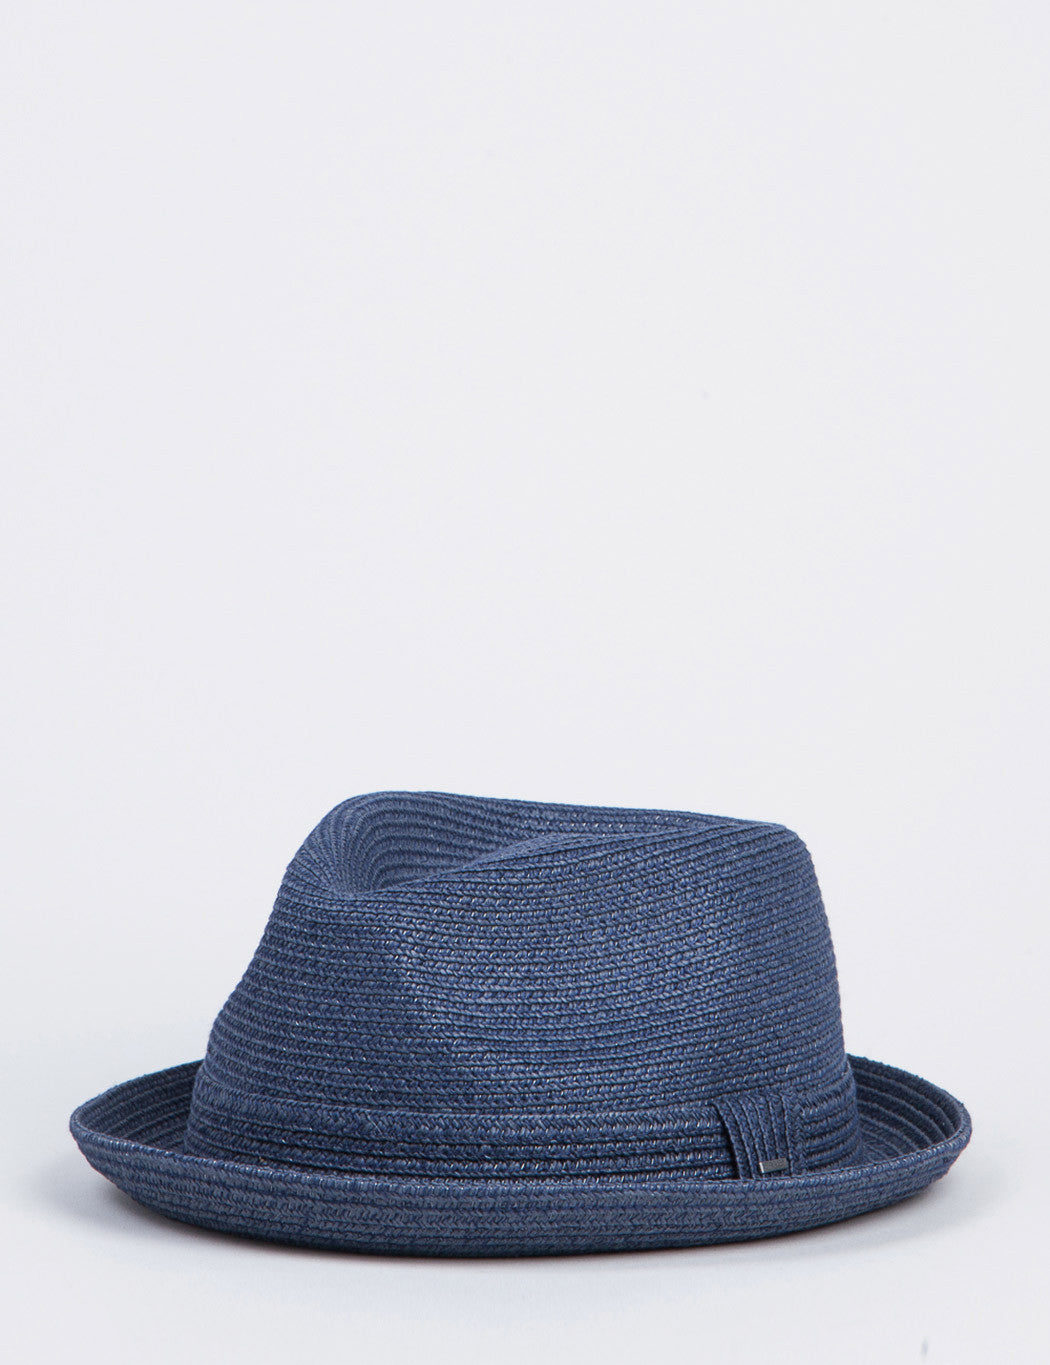 8e94a62cd872f Bailey Billy Trilby Hat - Navy Blue